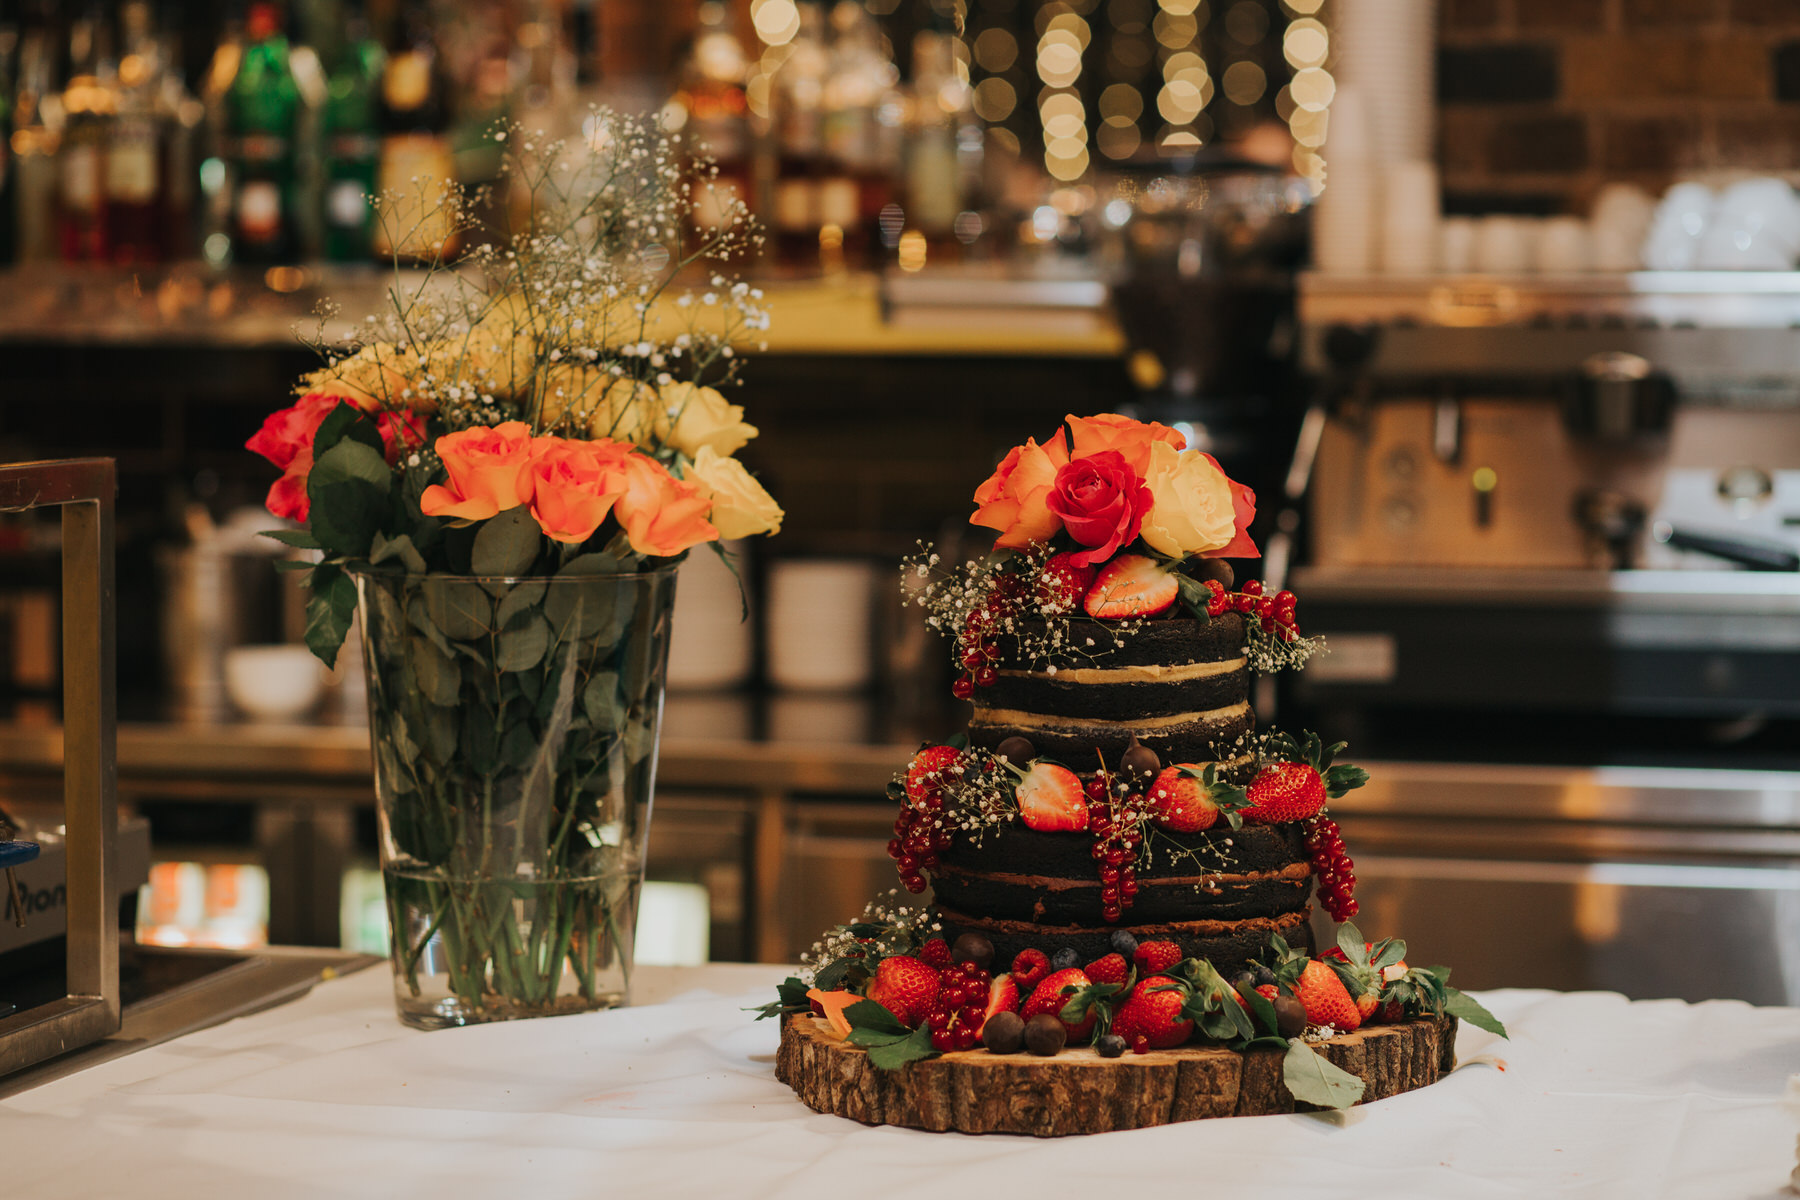 146-St Chads Place chocolate wedding cake decorated fresh roses strawberries babies breath.jpg